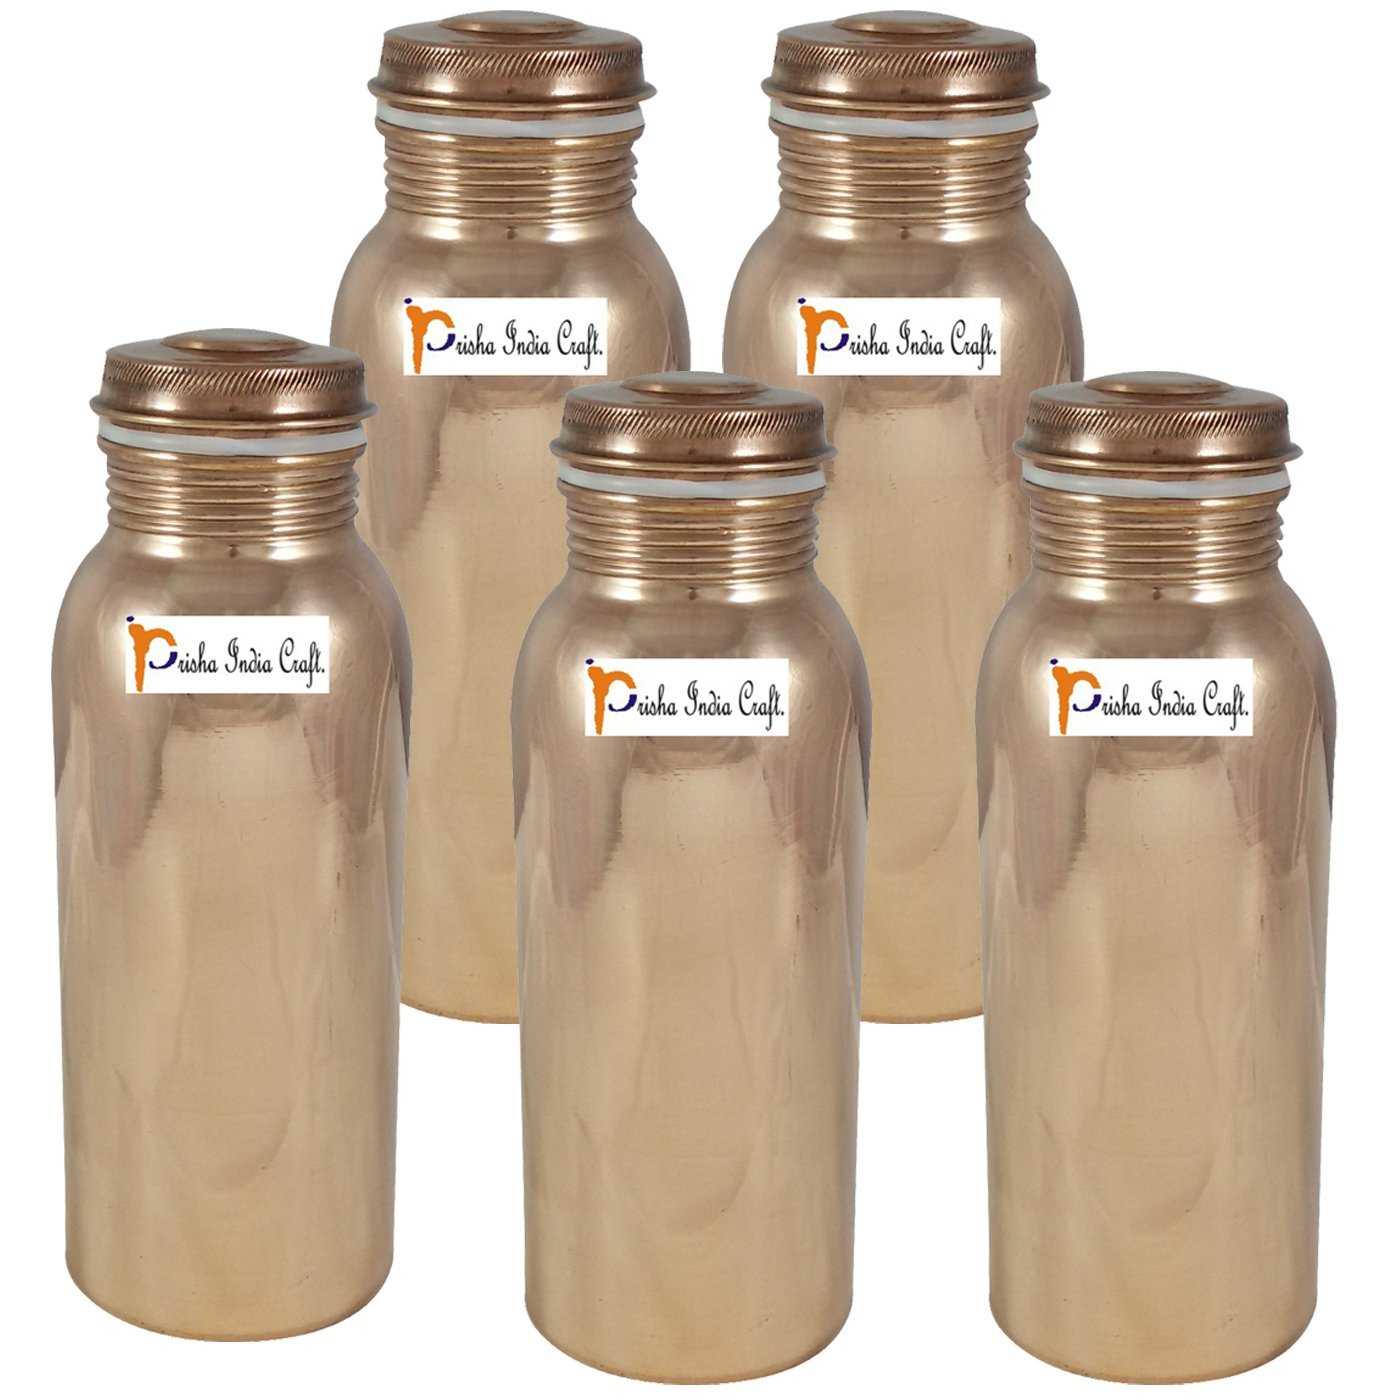 700ml / 23.67oz - Set of 5 - Prisha India Craft ® Pure Copper Water Bottle for Health Benefits - Handmade Water Bottles - Christmas Gift